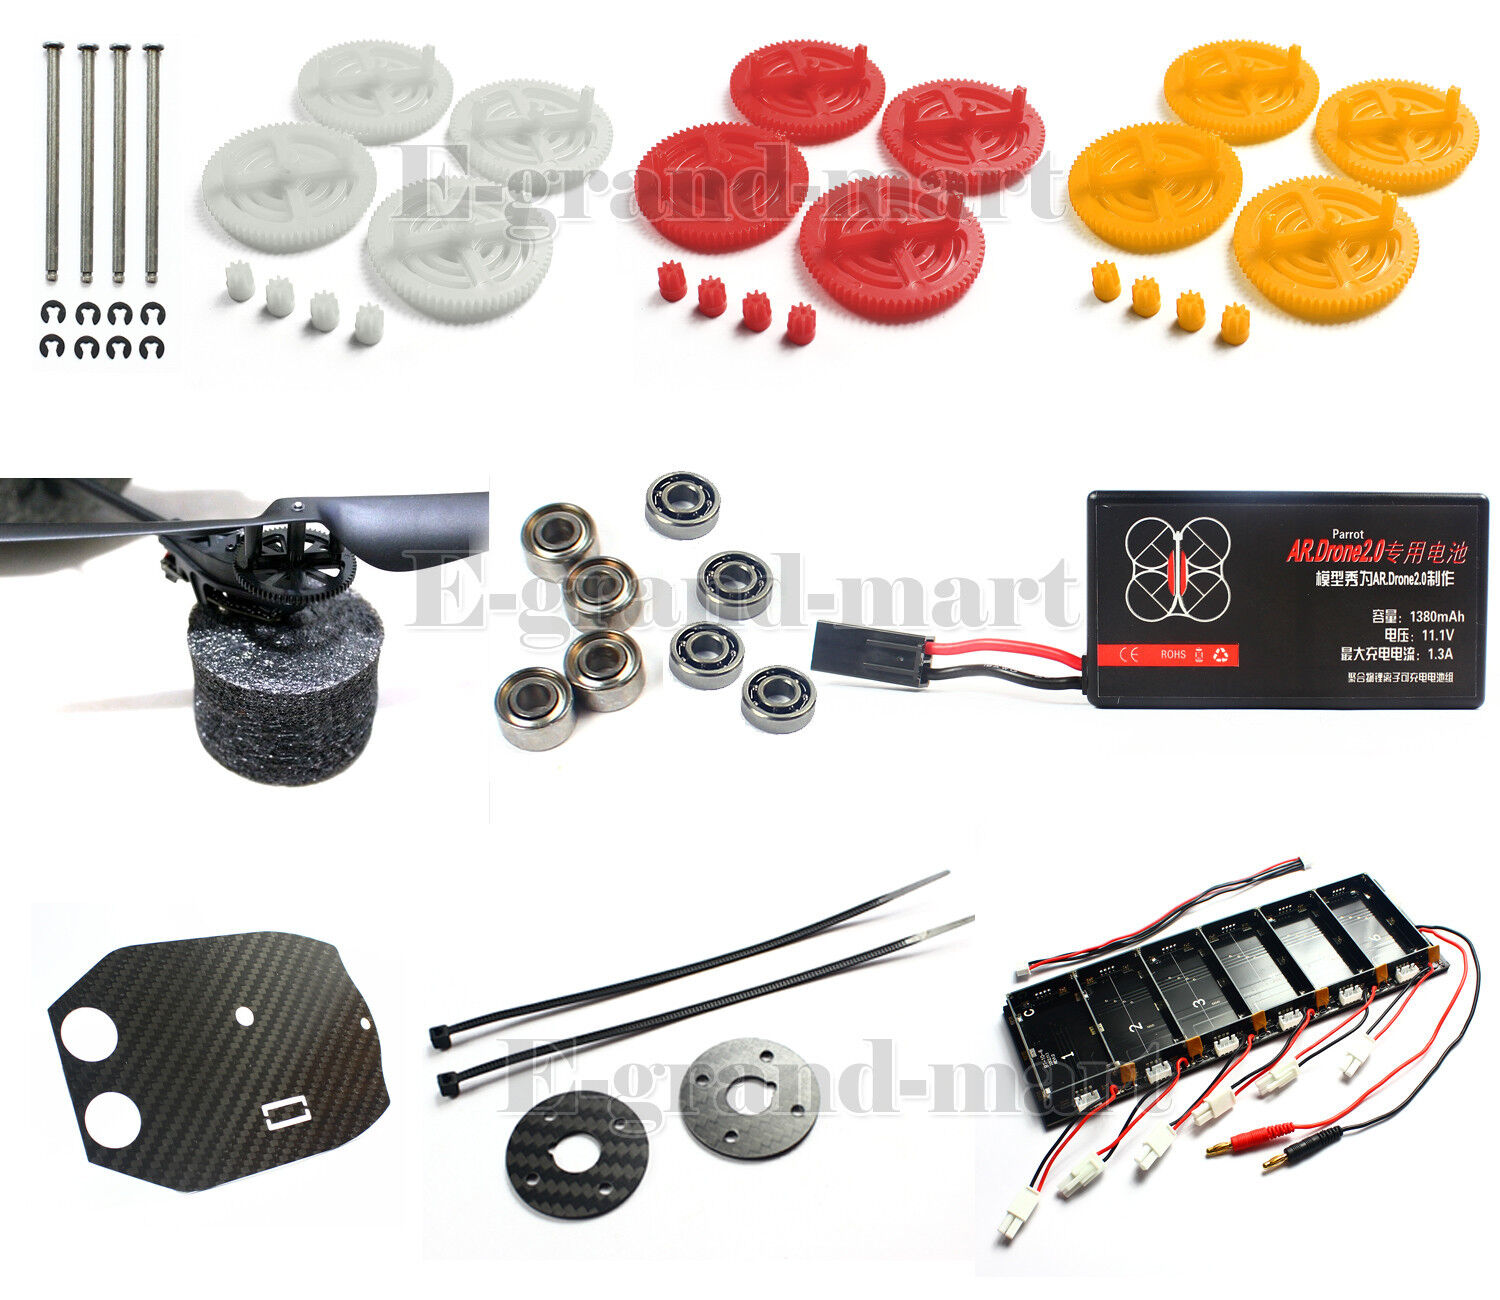 watch more like drone parts drone 2 0 parts gear moreover parrot ar drone parts on parrot drone